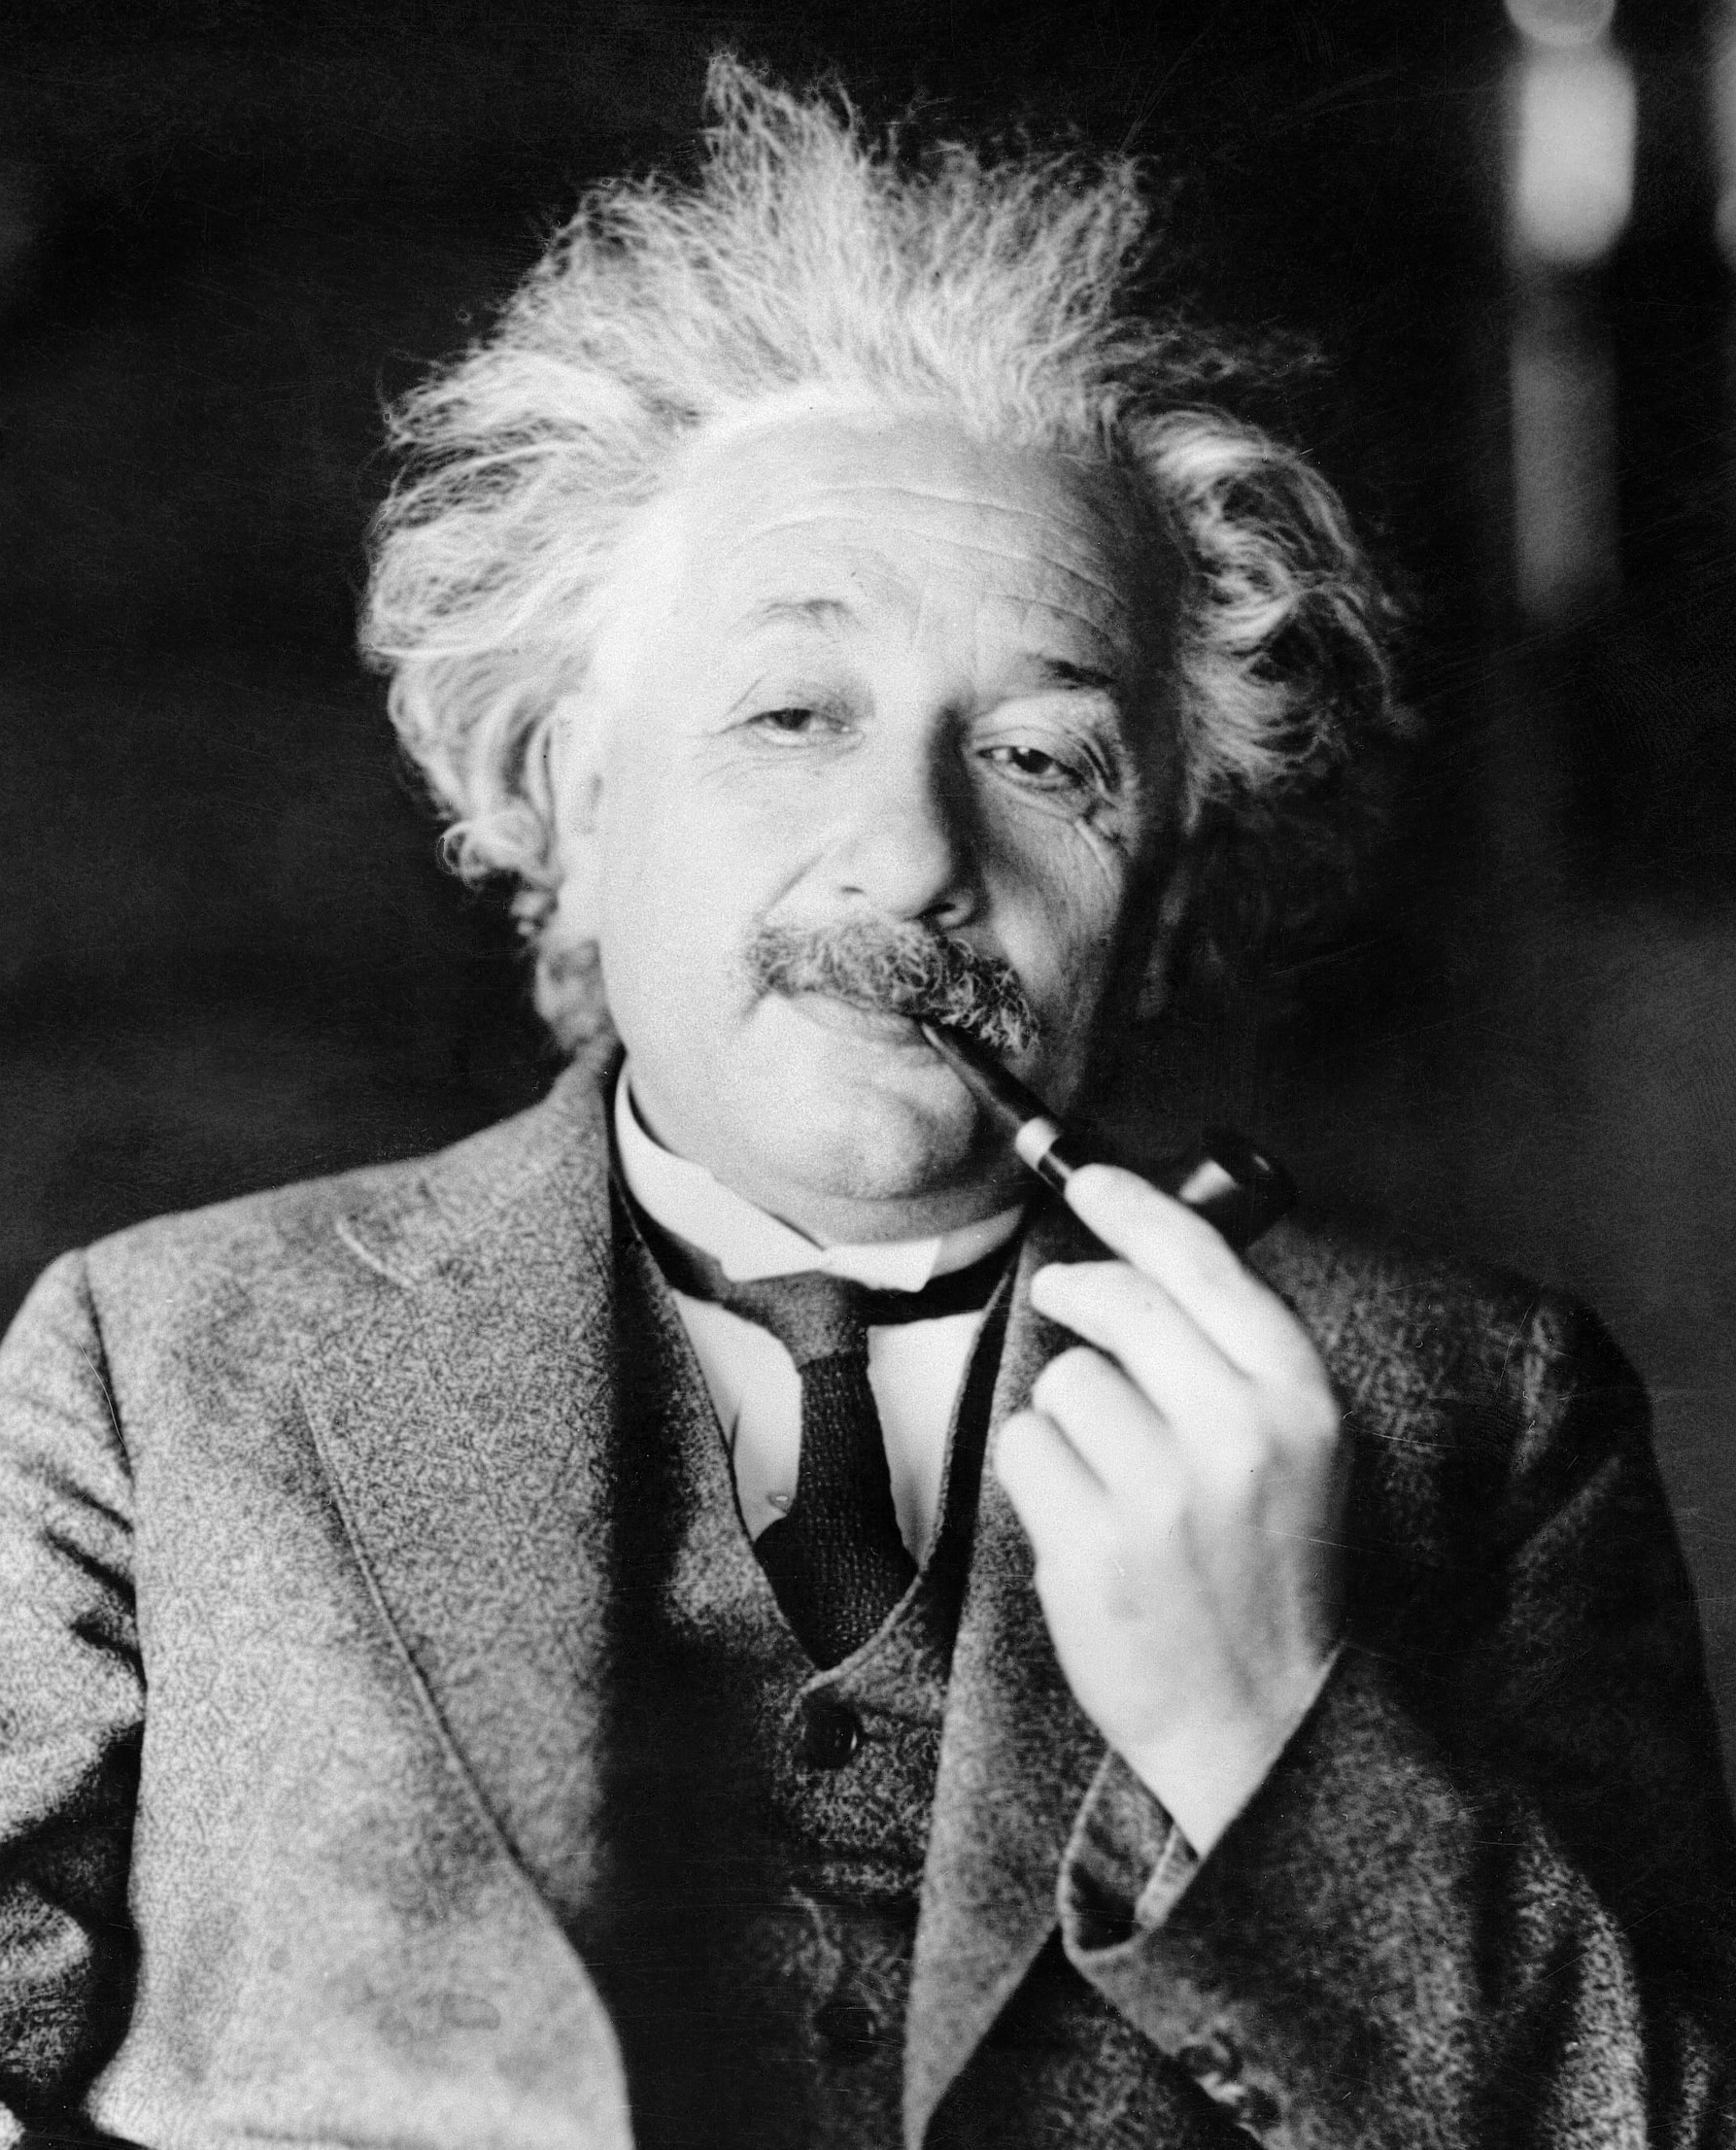 Images digital hd albert einstein picture colection - Albert einstein hd images ...